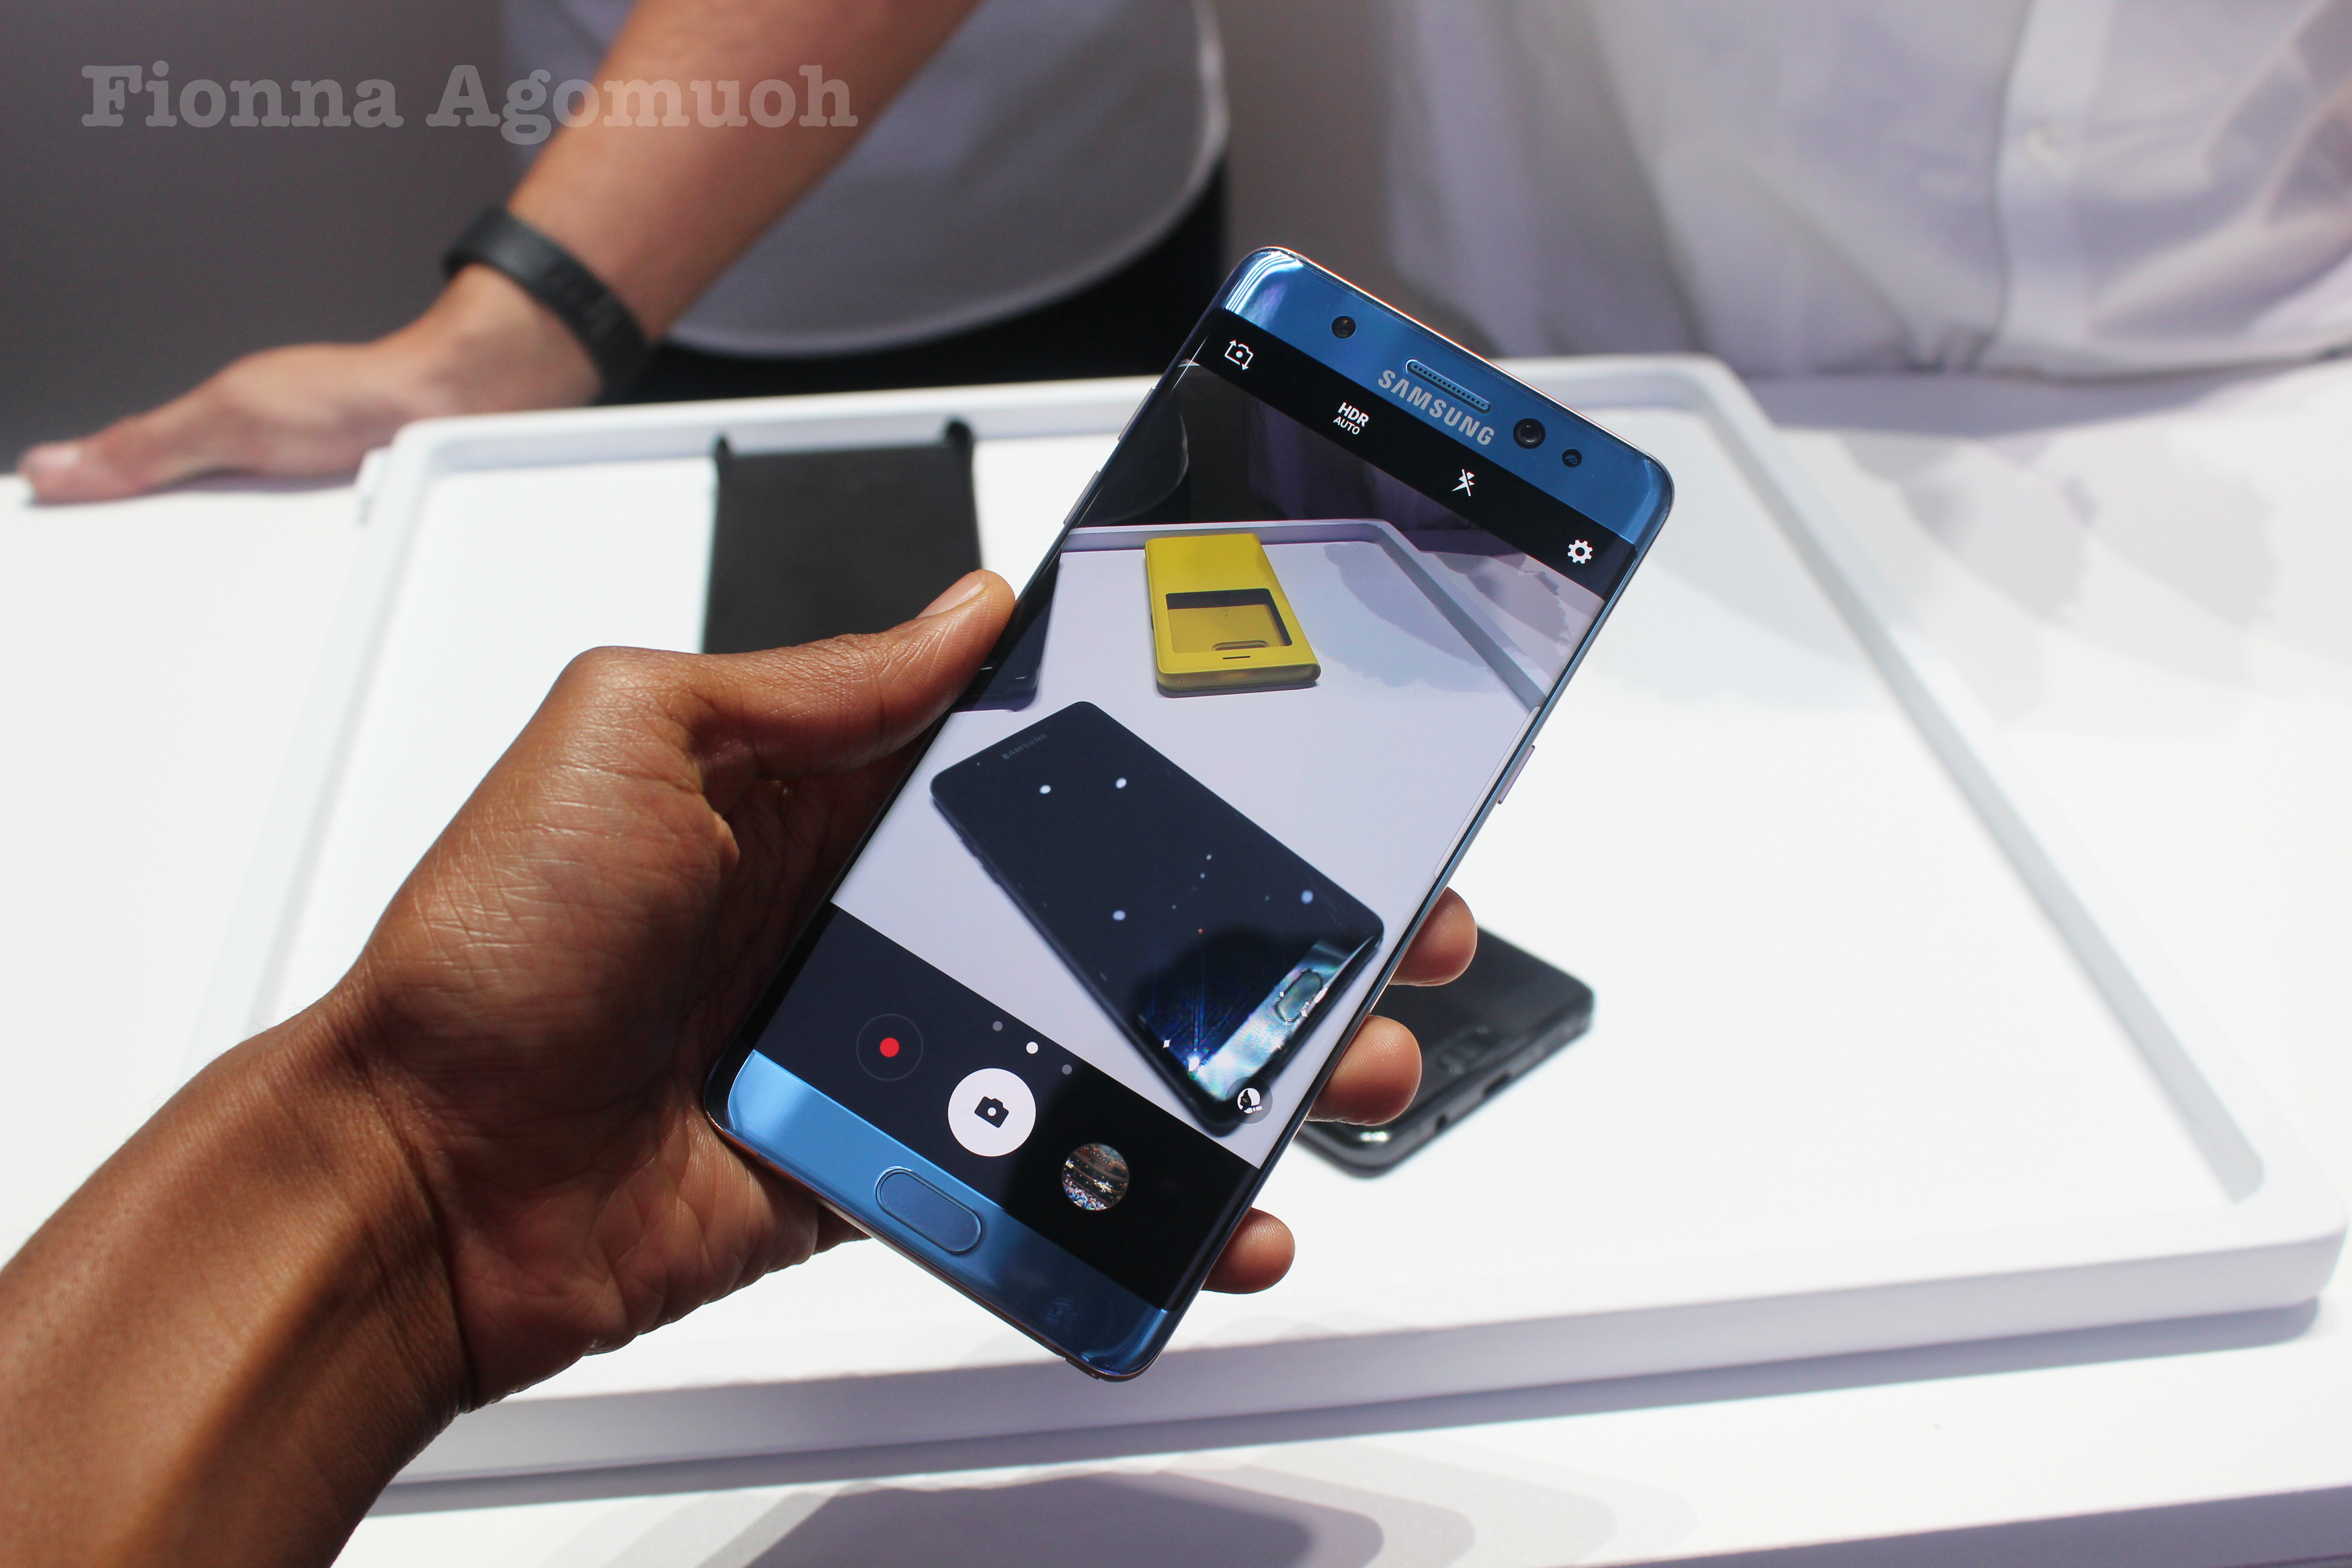 Samsung Galaxy S7 Edge Price How Much Will The Blue Coral Model At 32 Gb Smartphone T Mobile And Att Cost